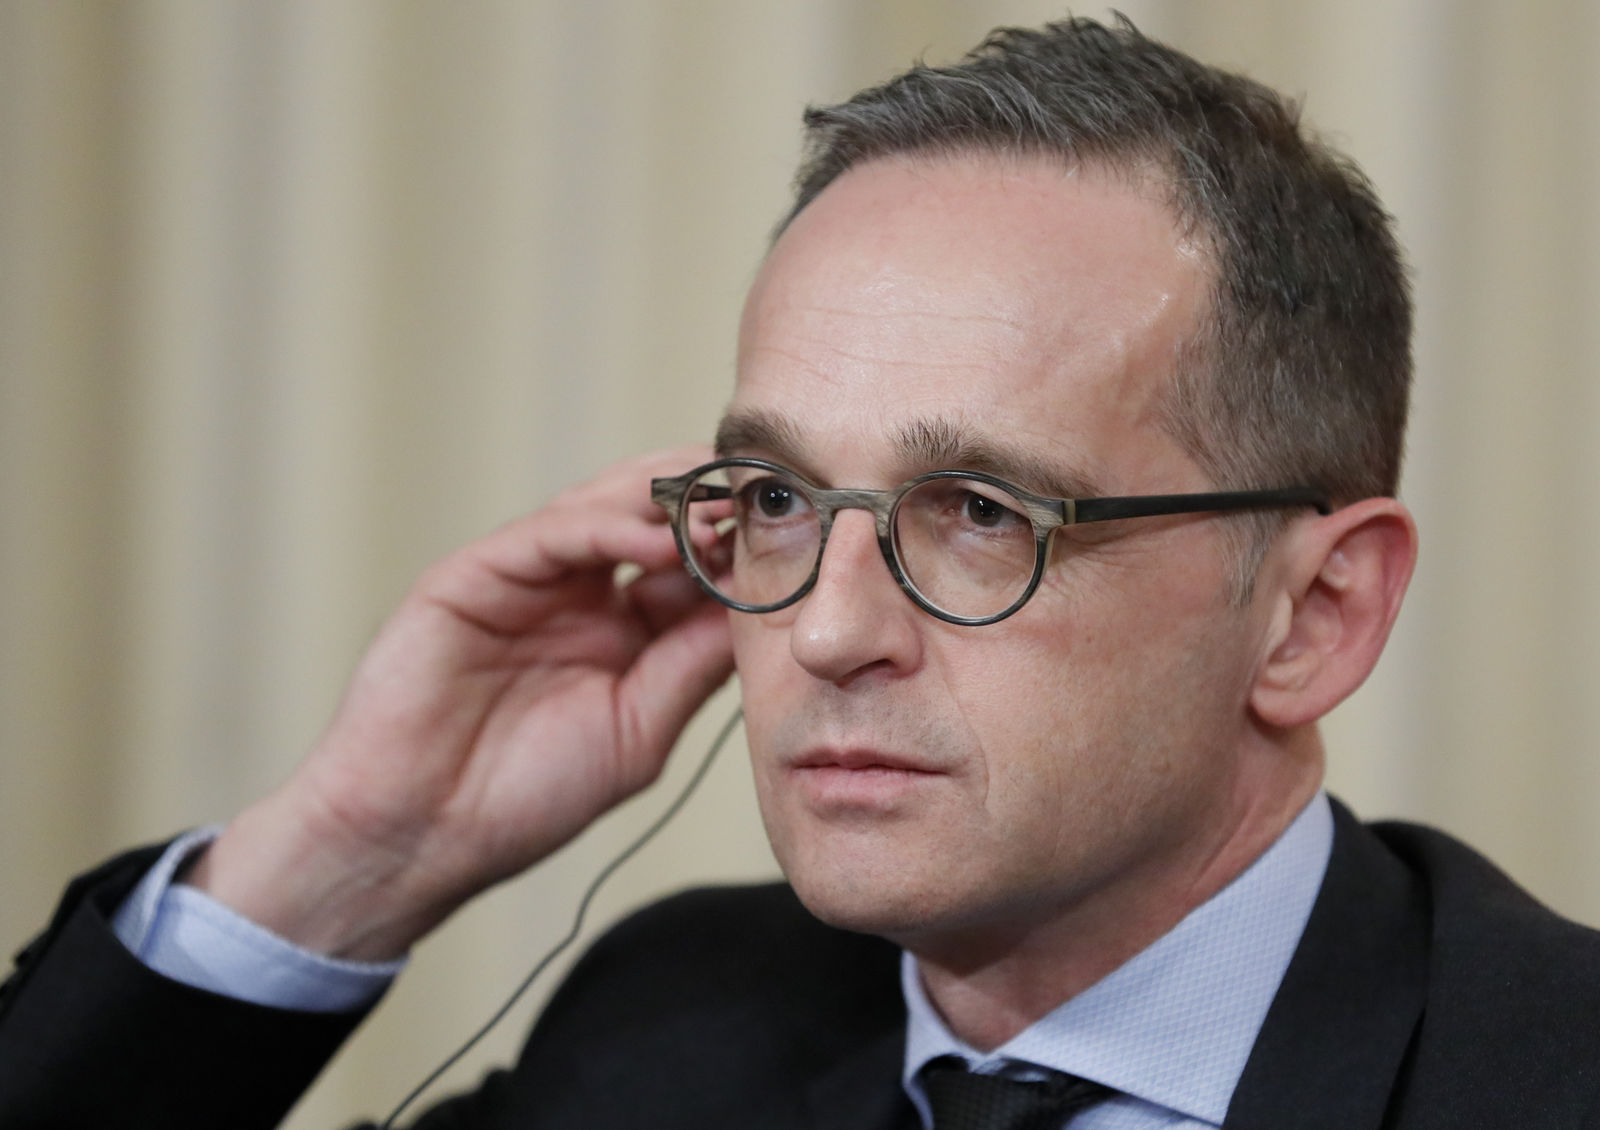 Germany's Foreign Minister Heiko Maas attends a joint news conference after his talks with Russian Foreign Minister Sergey Lavrov in Moscow, Russia, Friday, Jan. 18, 2019. Germany's foreign minister has urged Russia to save a key arms treaty with the U.S. to prevent a new arms race. (AP Photo)